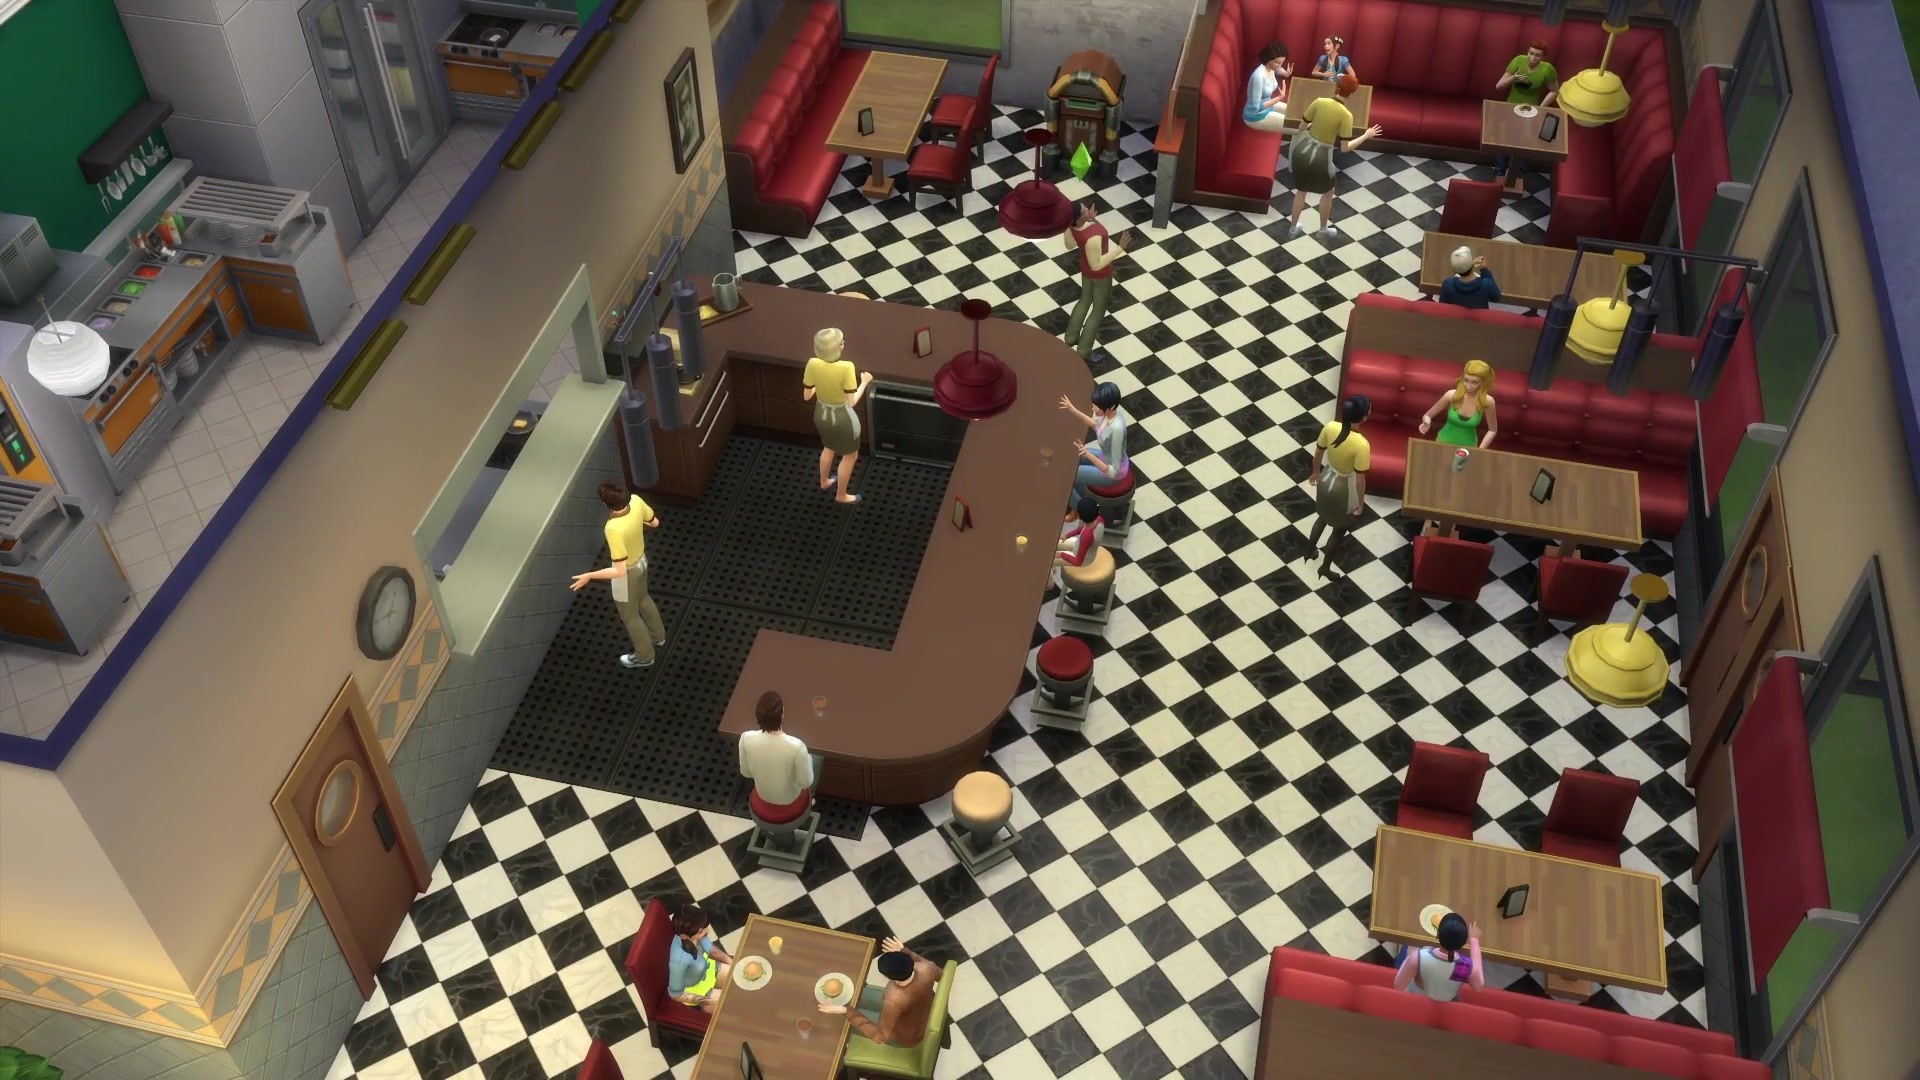 The Sims 4 Dine Out Trailer What S In The Restaurant Game Pack Every Feature Revealed So Far Photos Player One